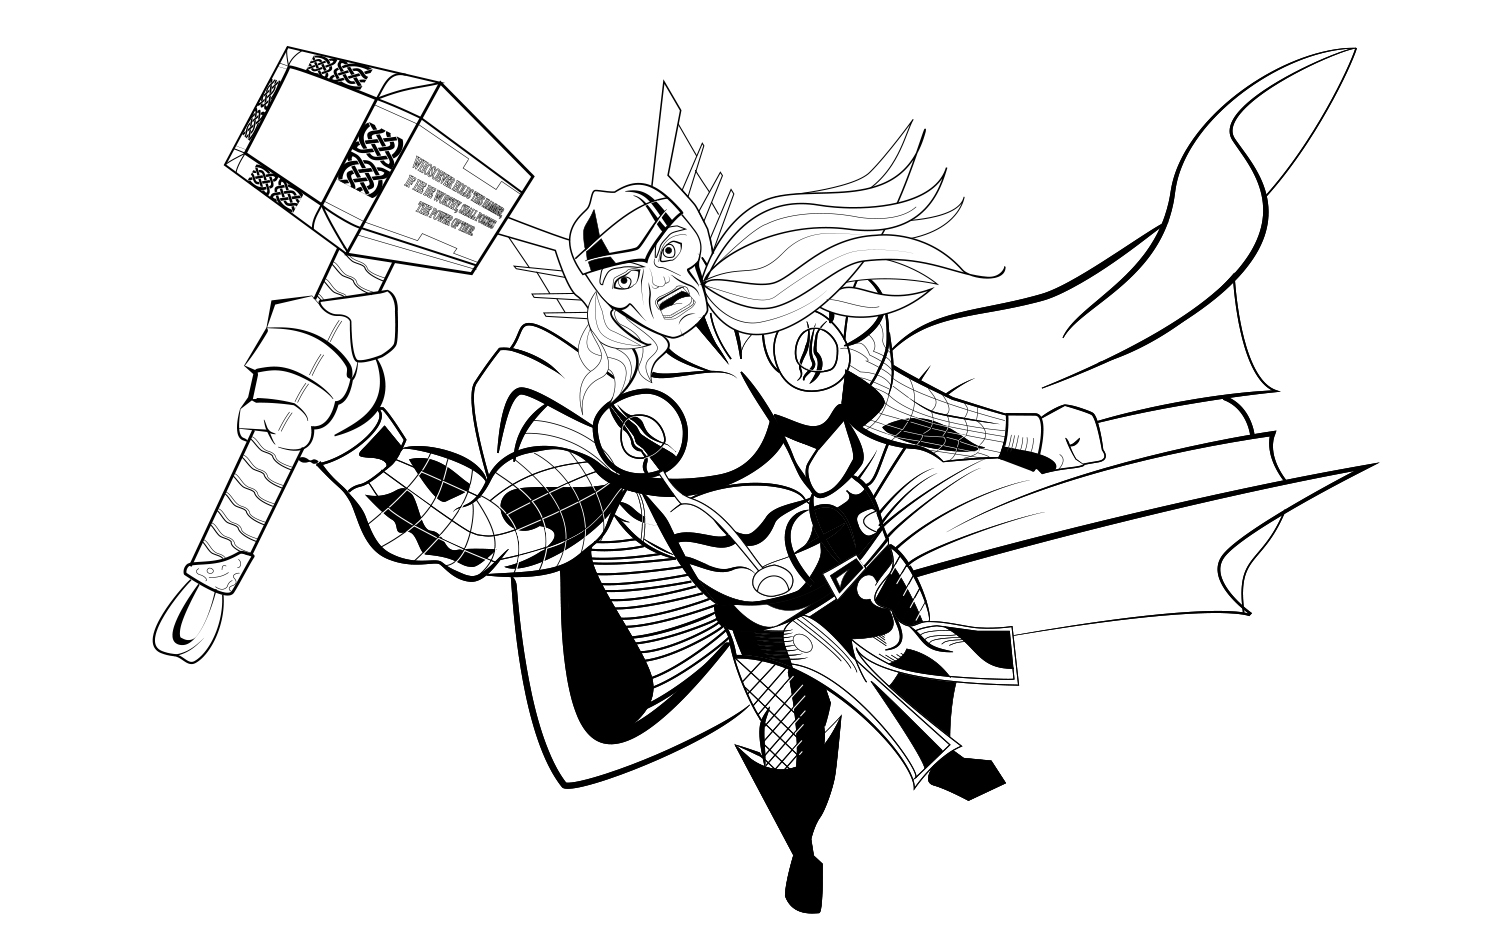 thor-digital-inks-rotated-hammer.jpg